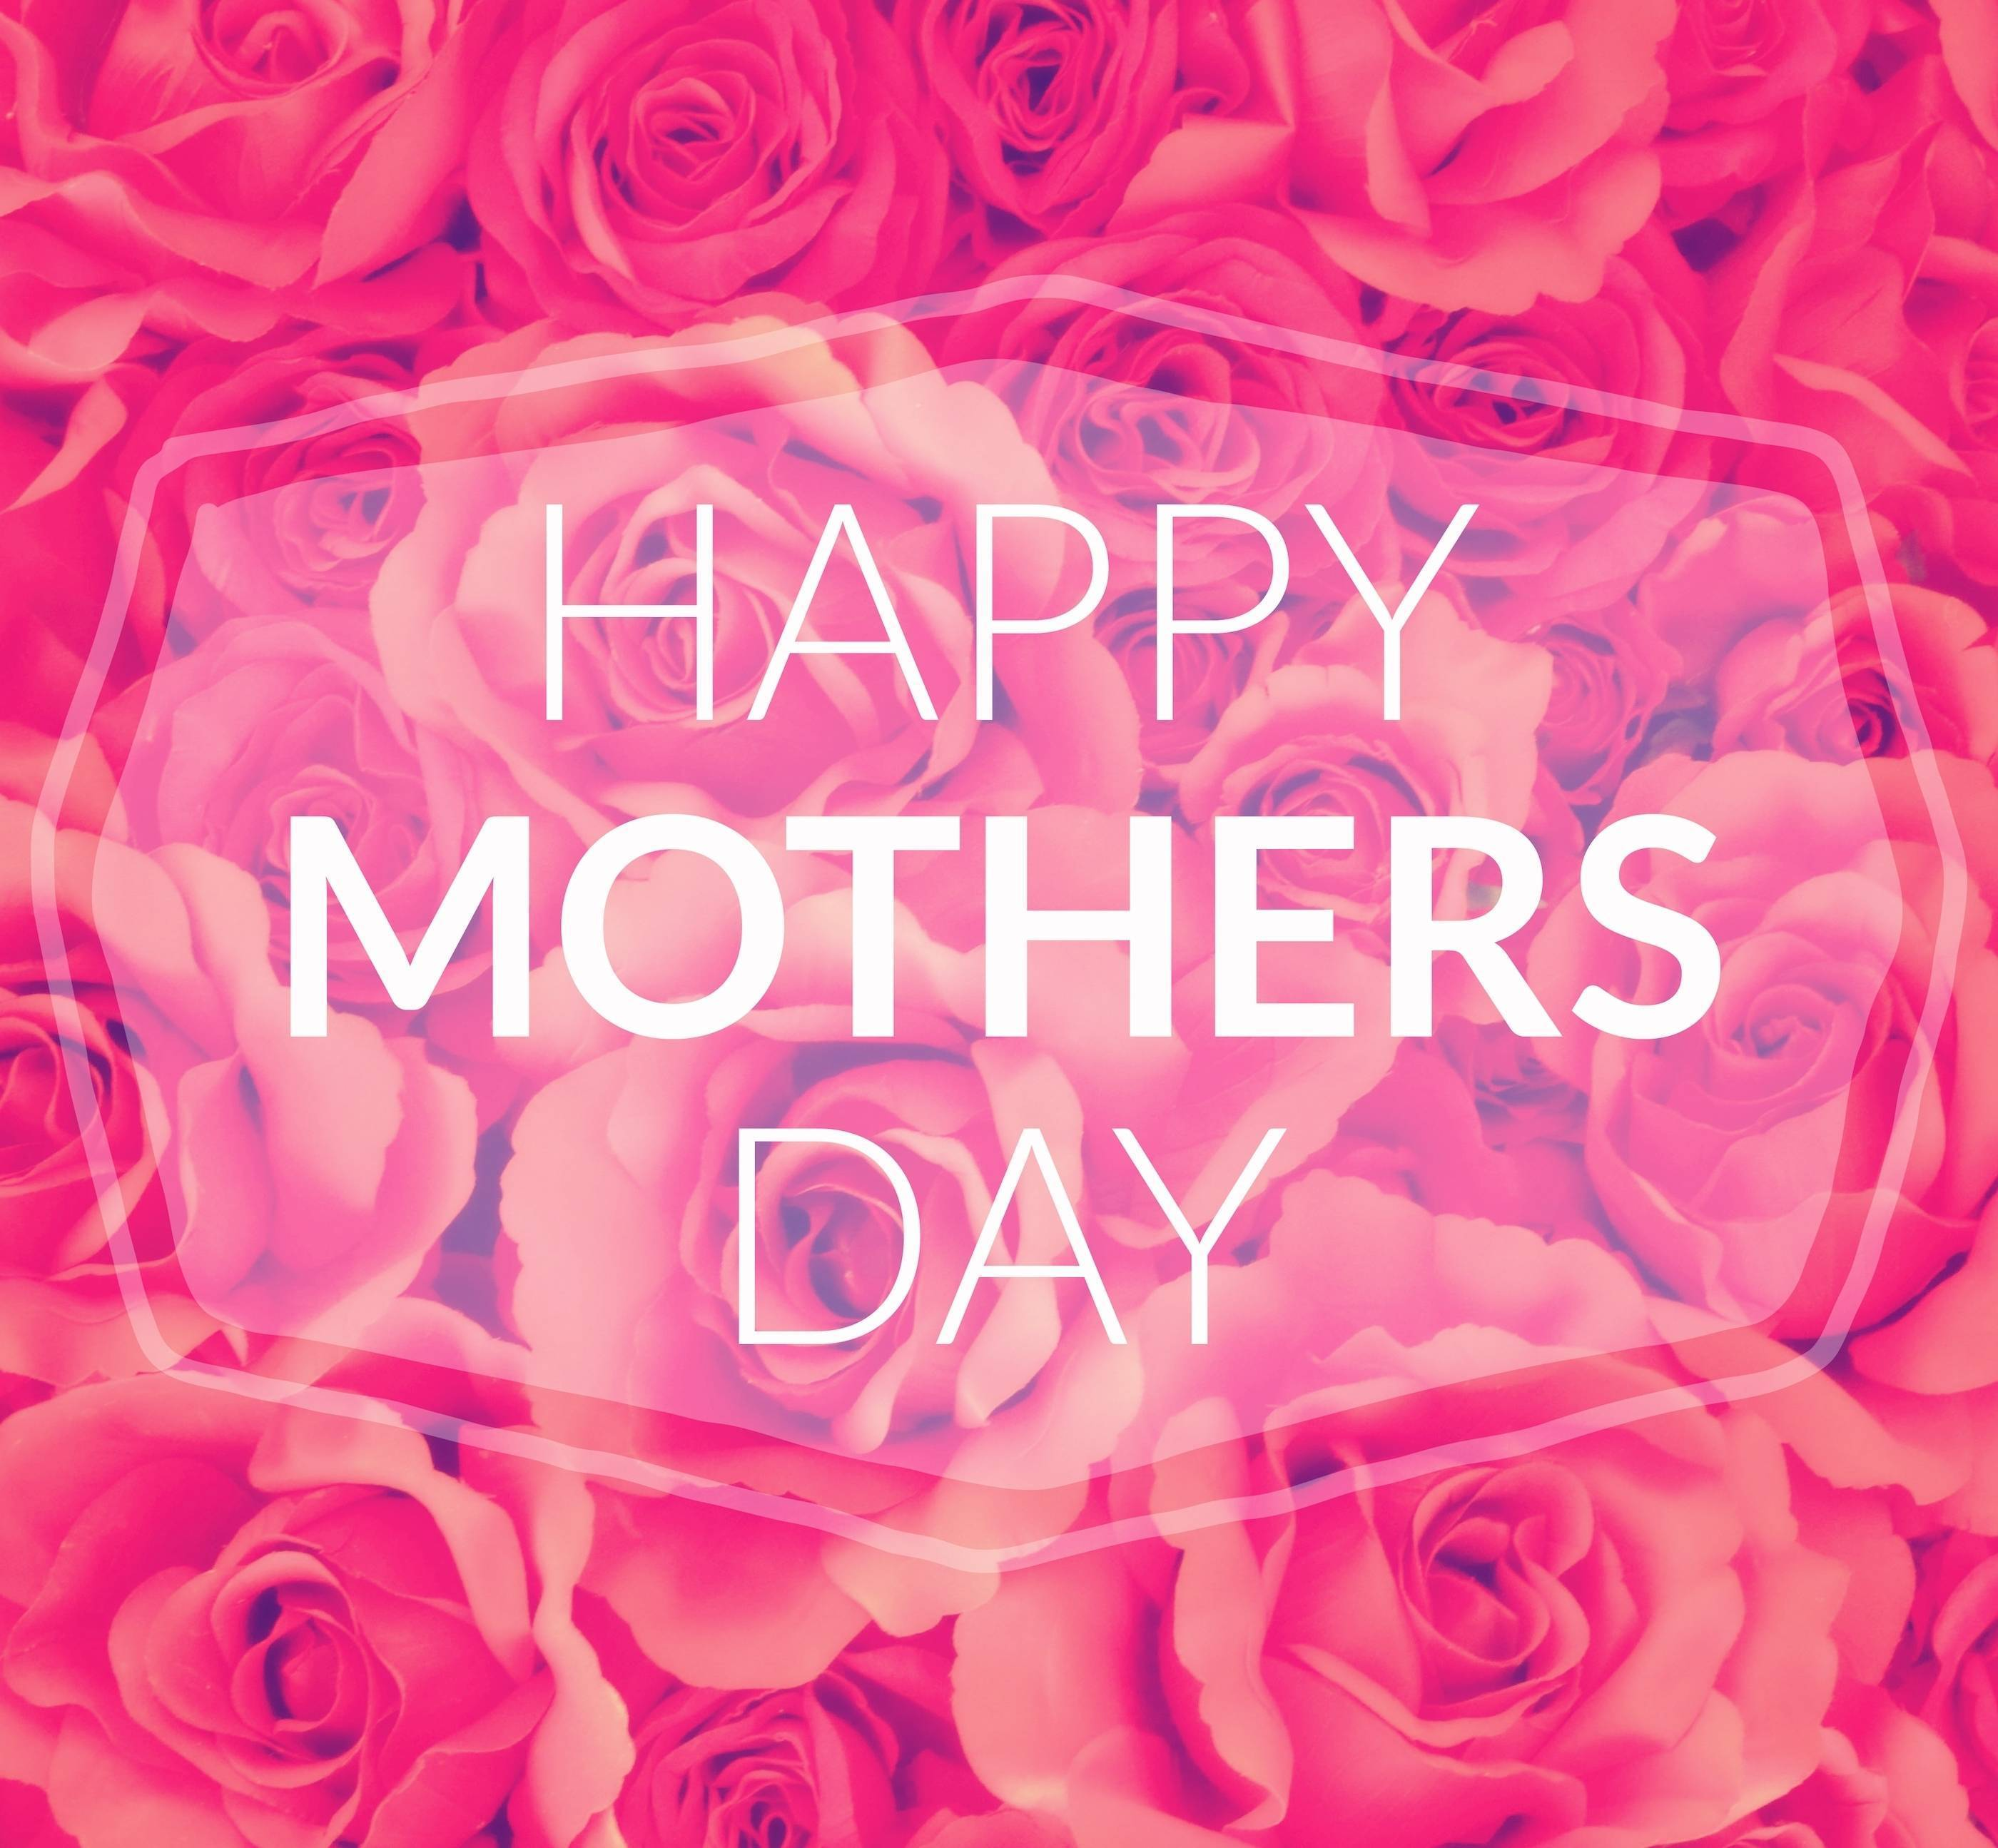 Happy Mother's Day From TAPinto East Hanover Florham Park